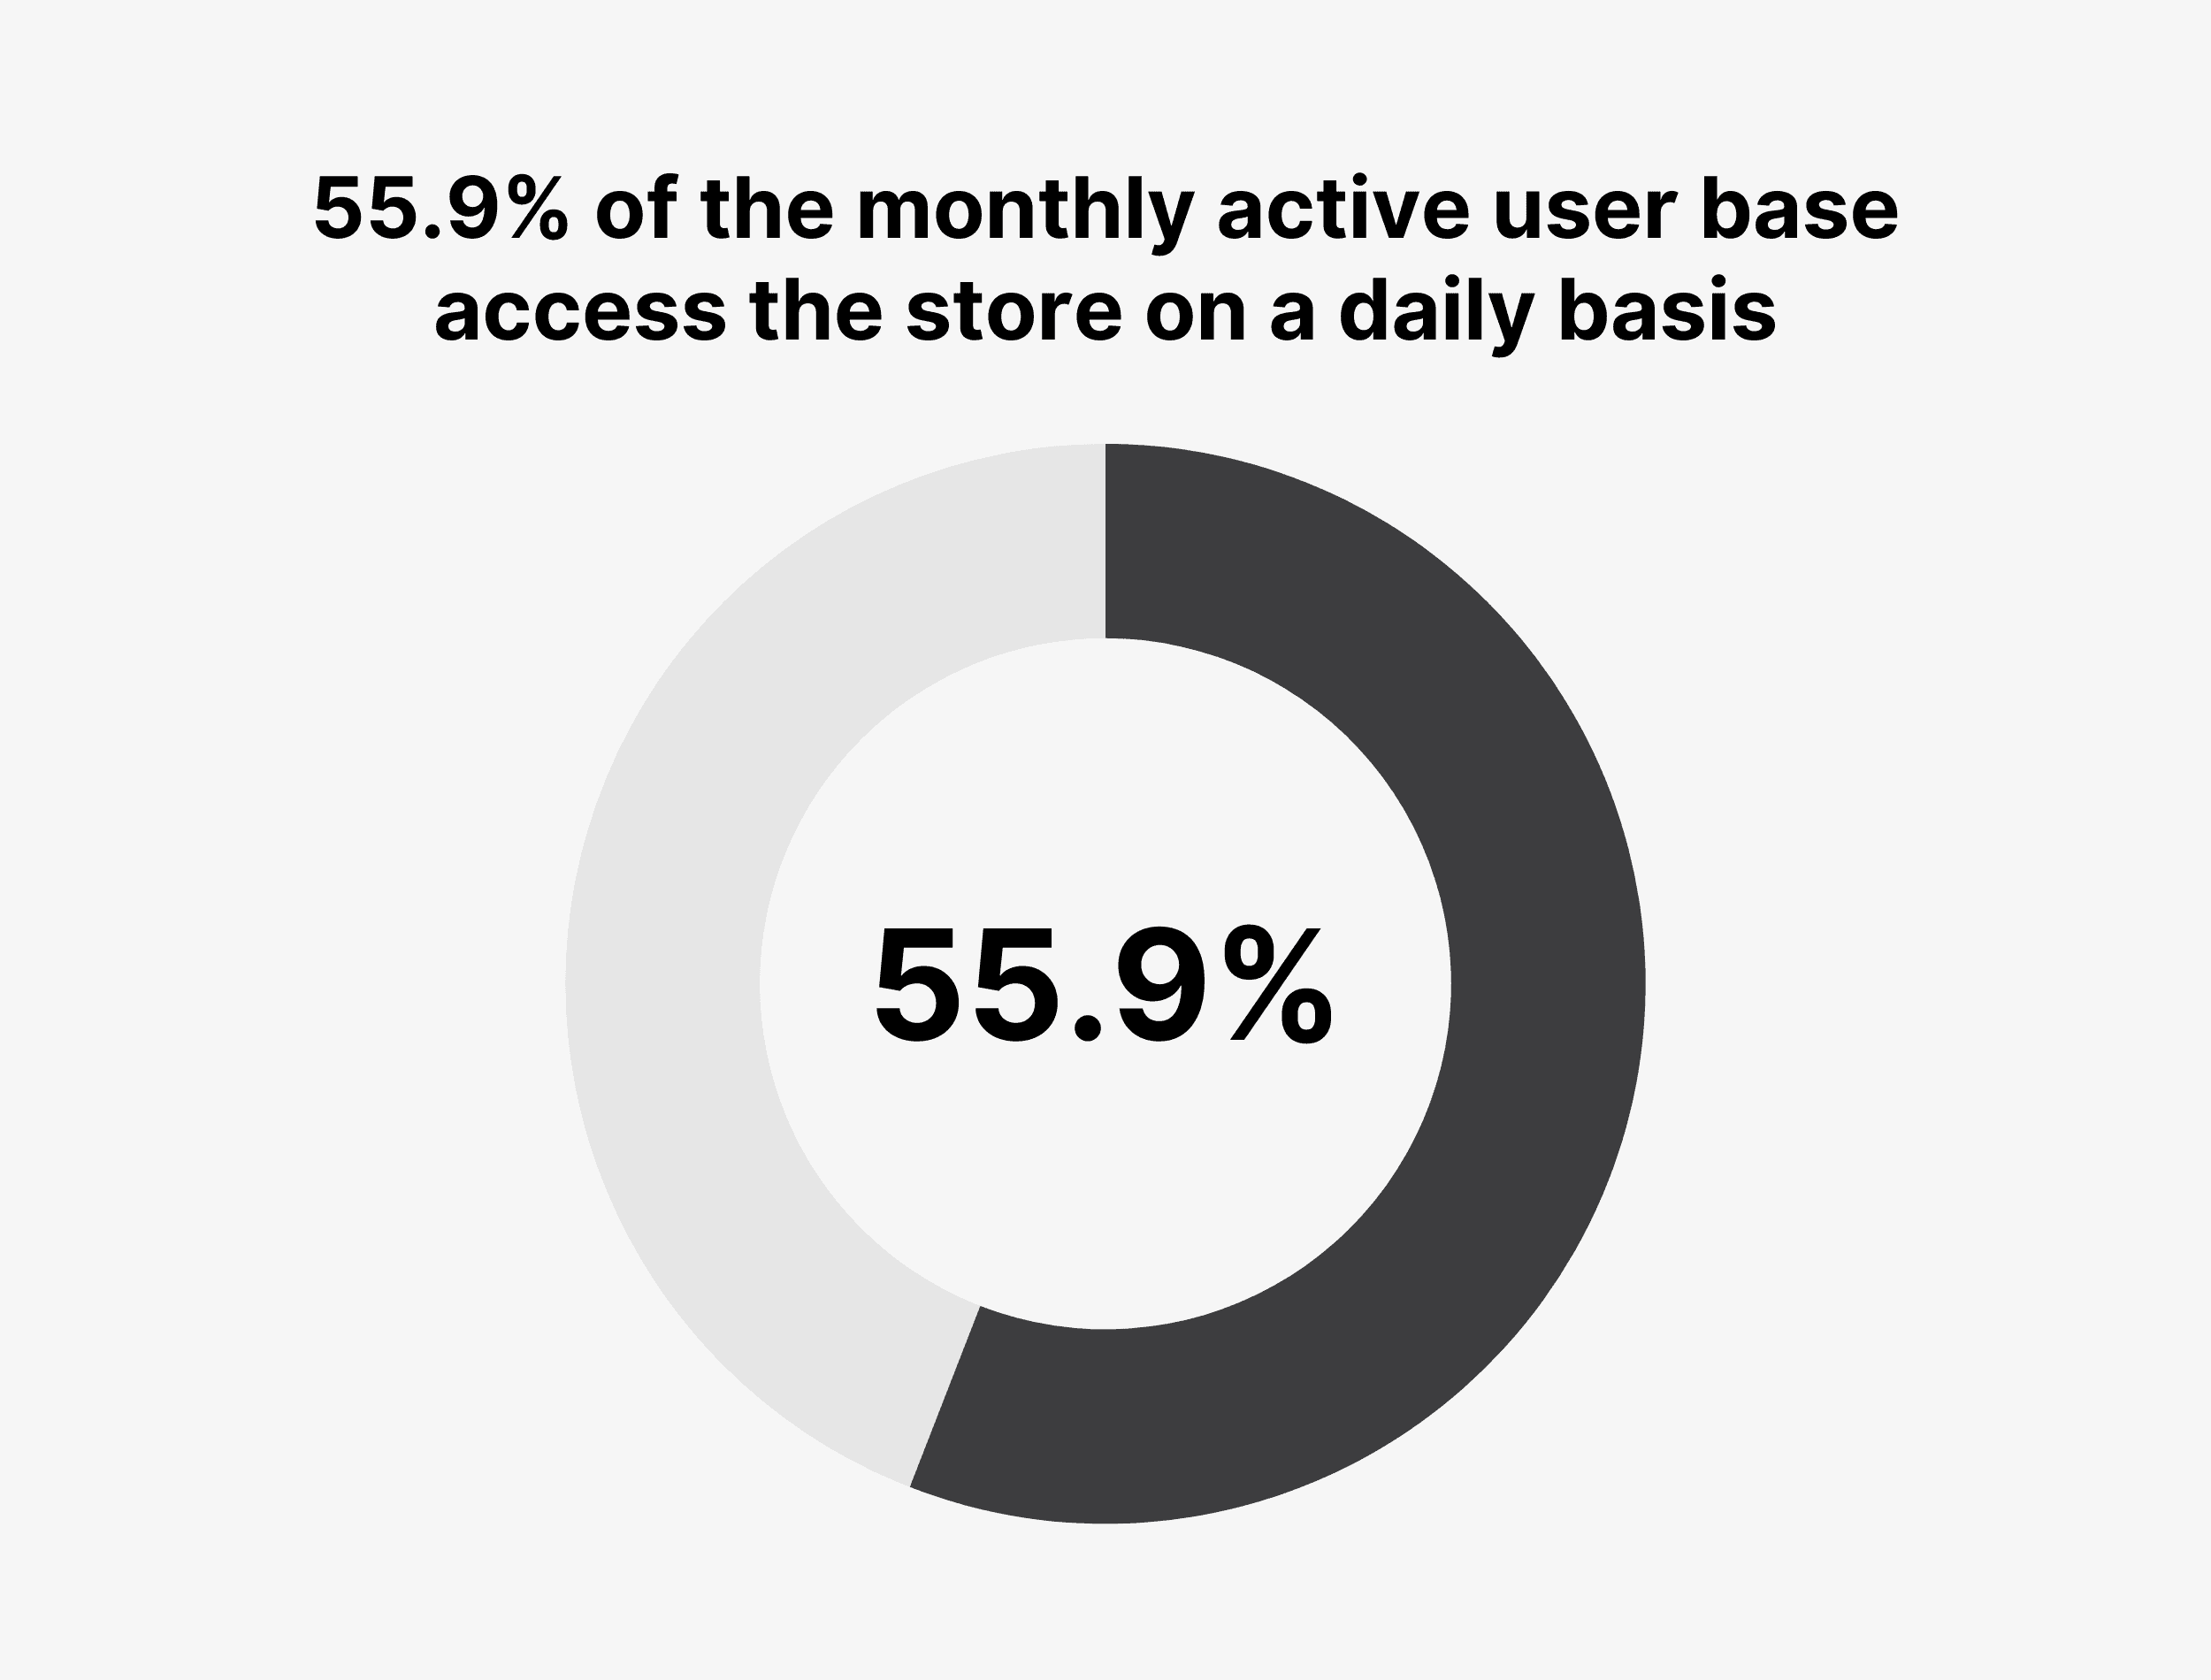 55.9% of the monthly active user base access the store on a daily basis